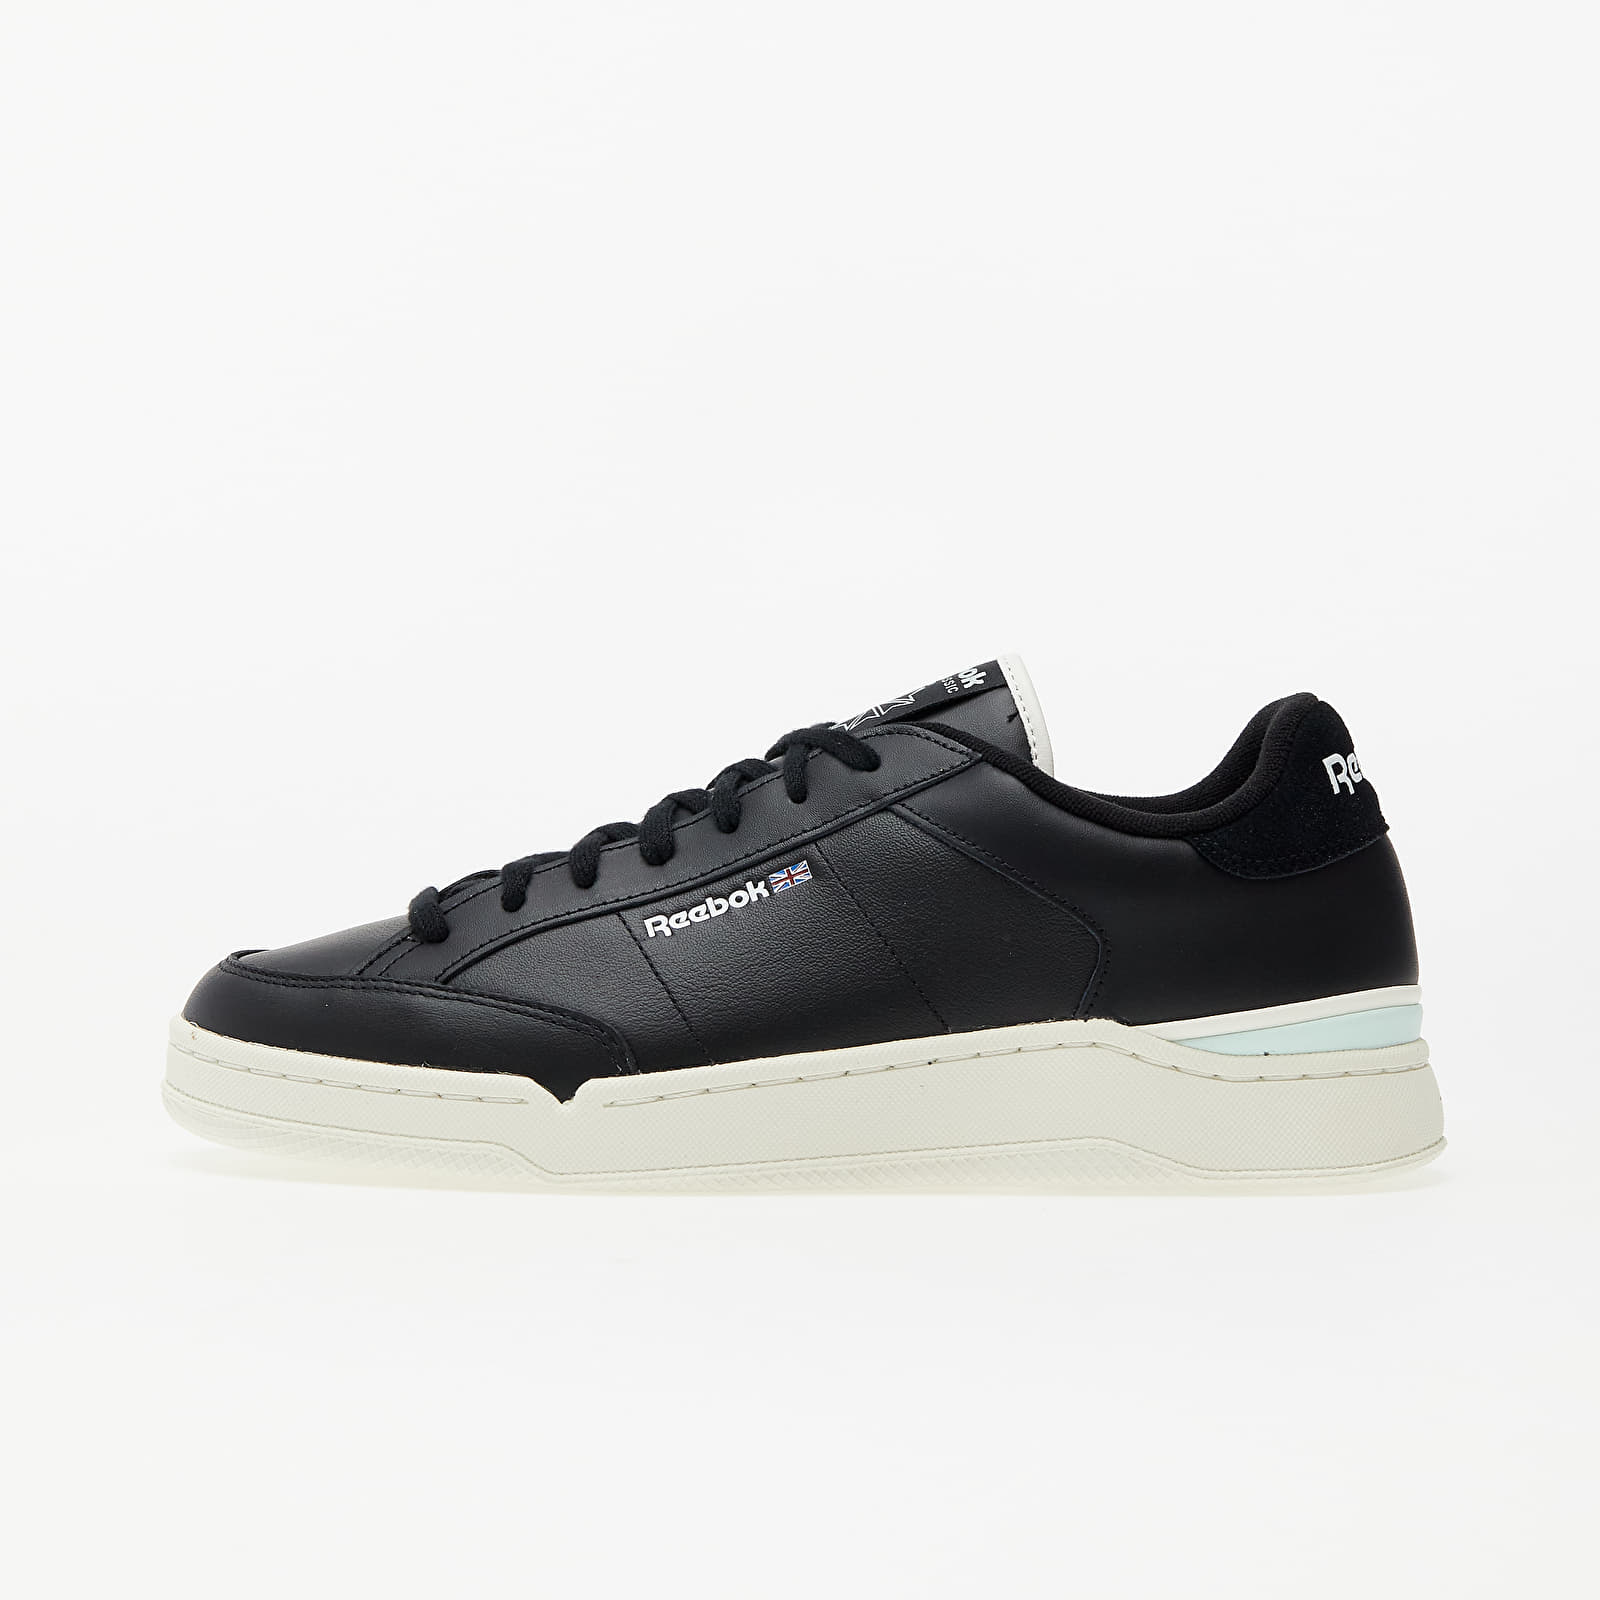 Мужская обувь Reebok AD Court Core Black/ Aqua Dust/ Ftw White